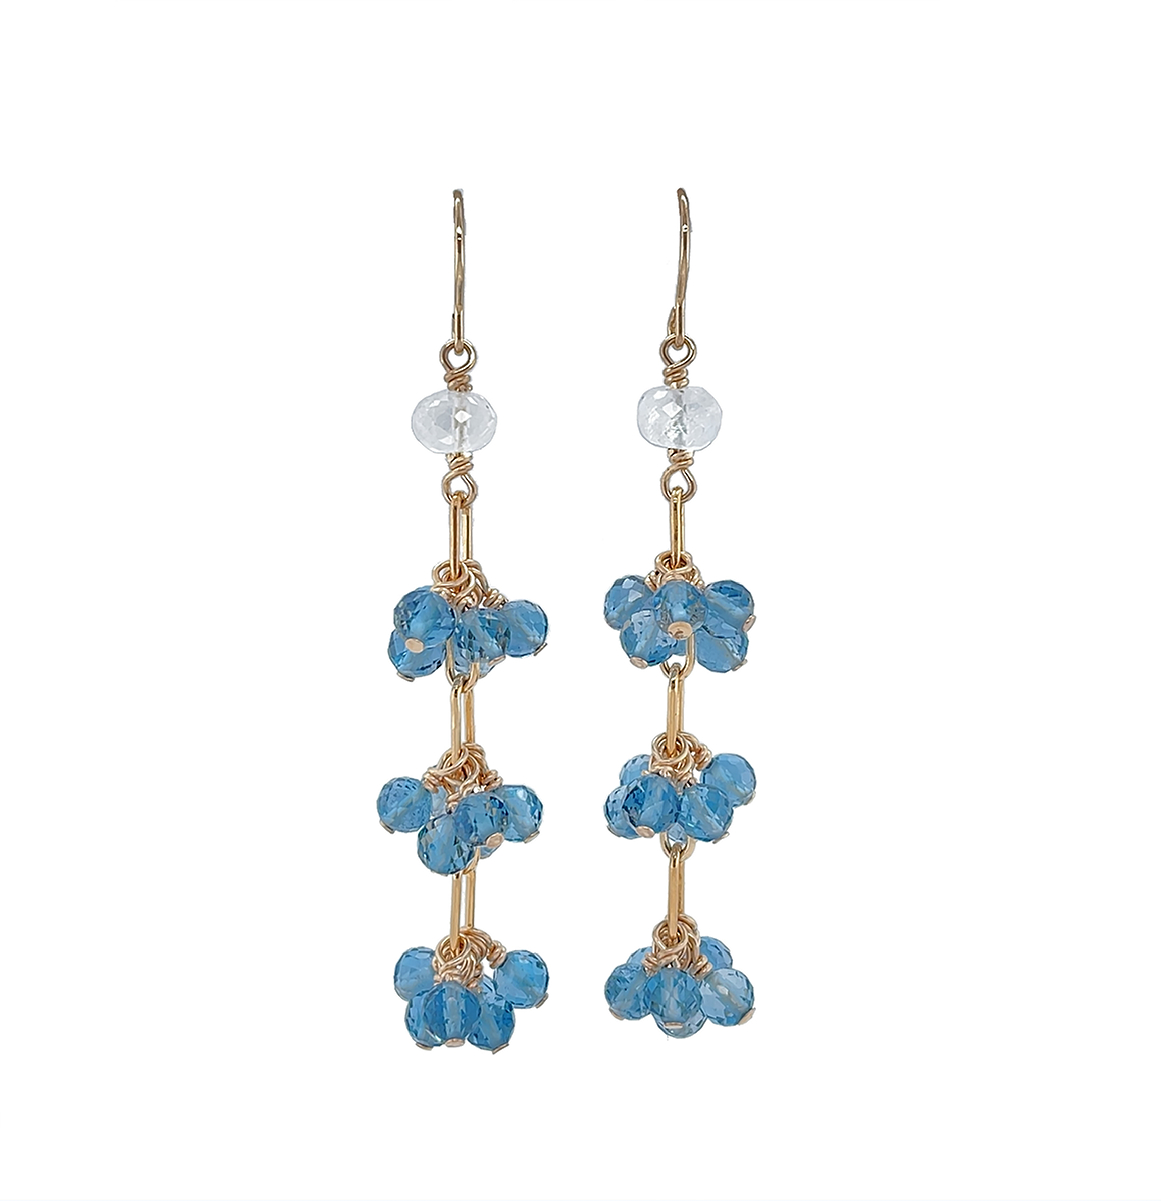 Moonstone & Blue Topaz Earrings